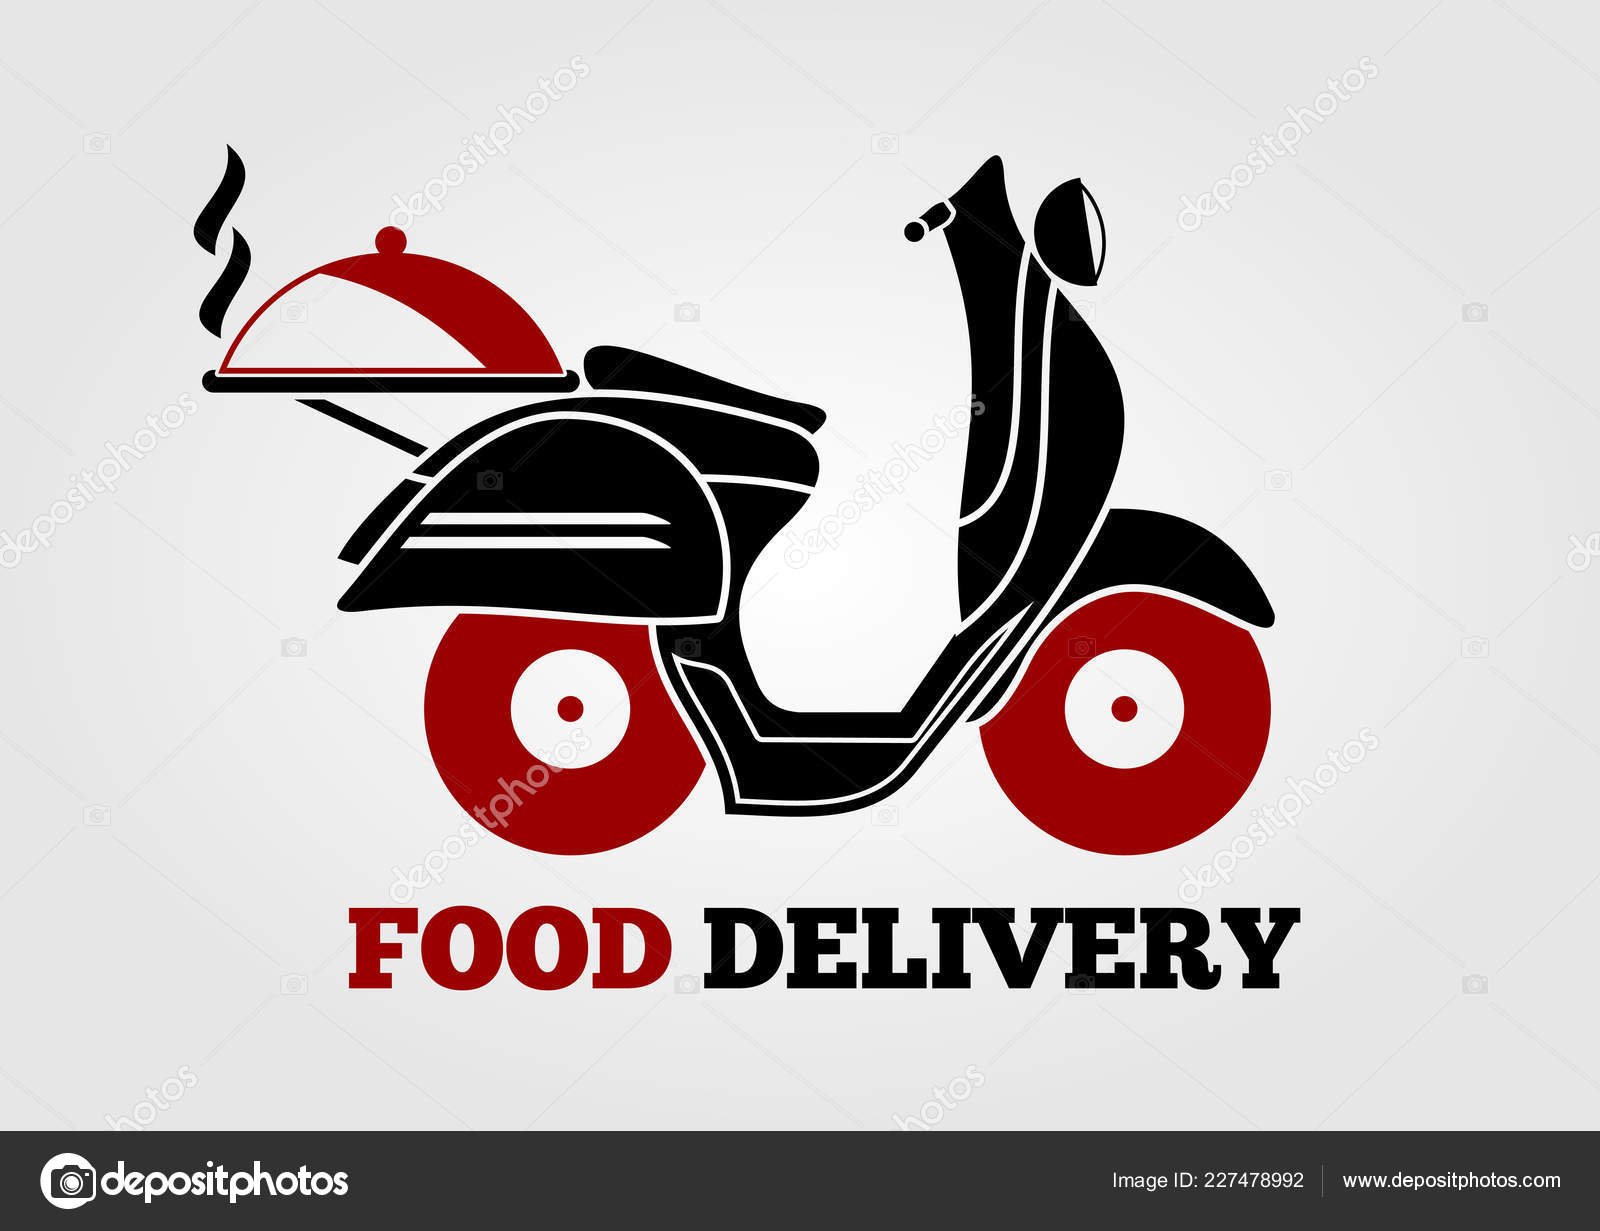 food delivery logo design with retro scooter vector illustration stock vector c zfmbek 227478992 https depositphotos com 227478992 stock illustration food delivery logo design with html